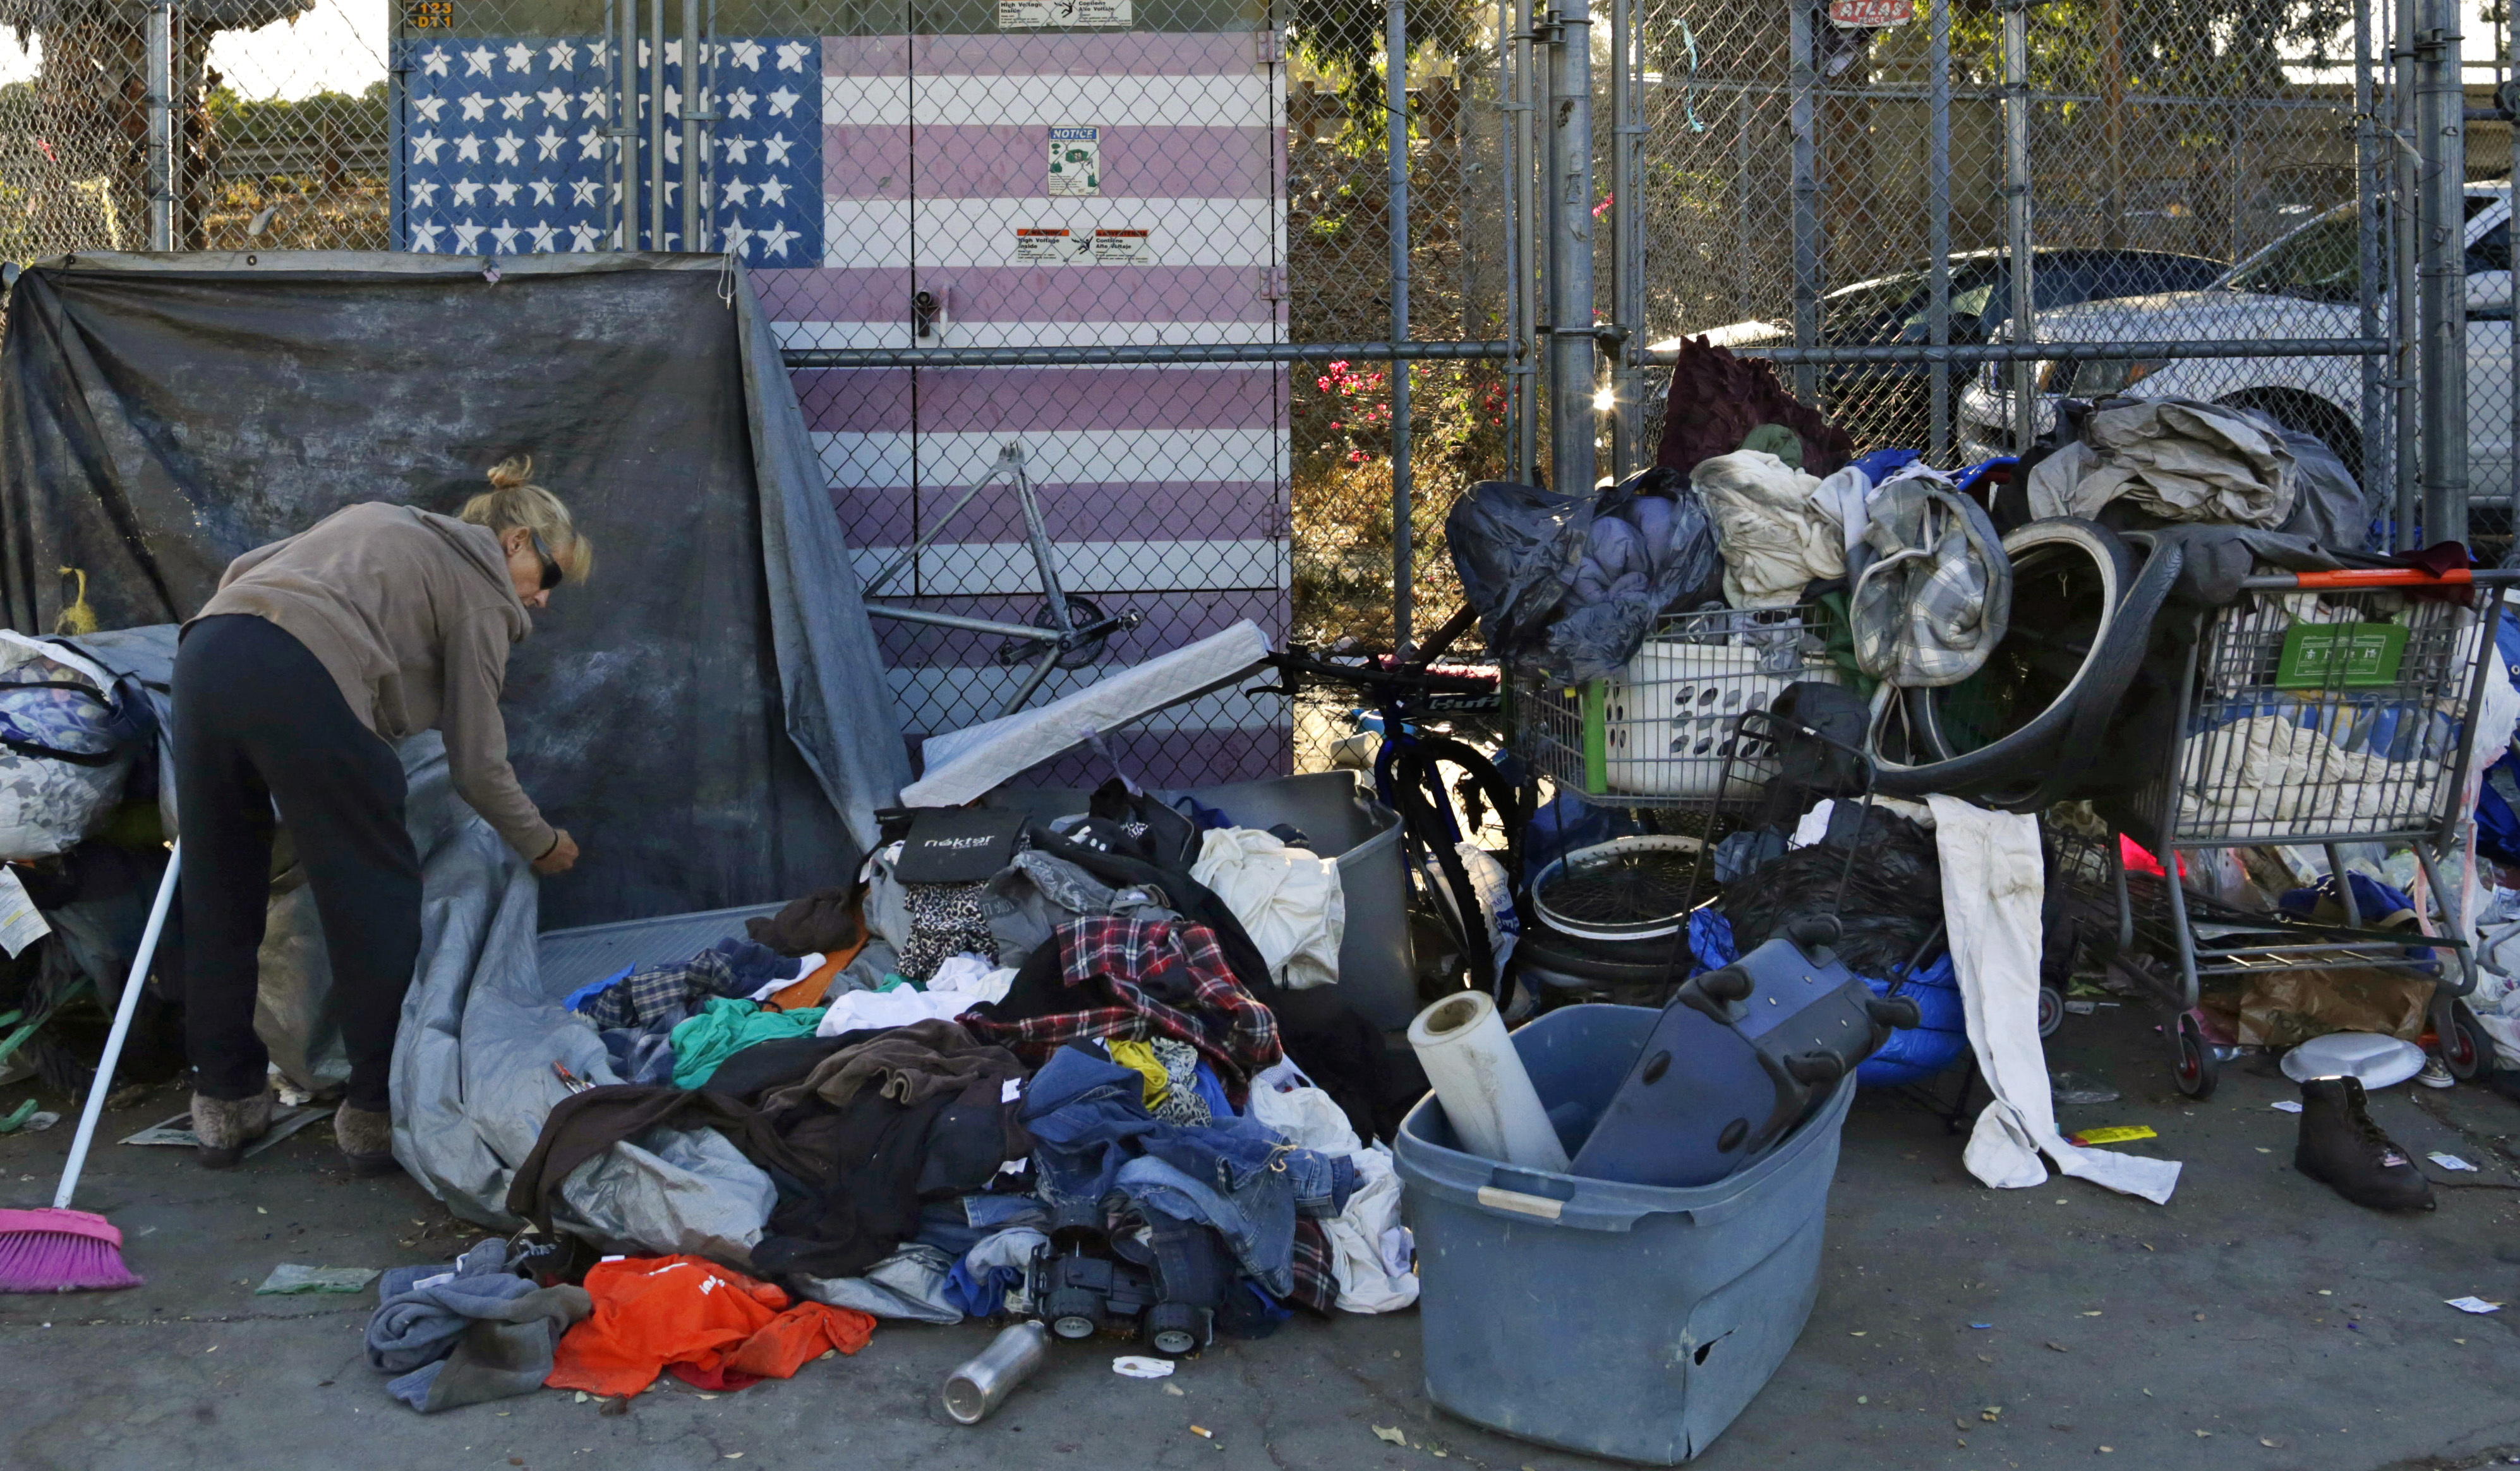 San Diego County Supervisors OK County Applying For $10M Grant For Homeless Relief